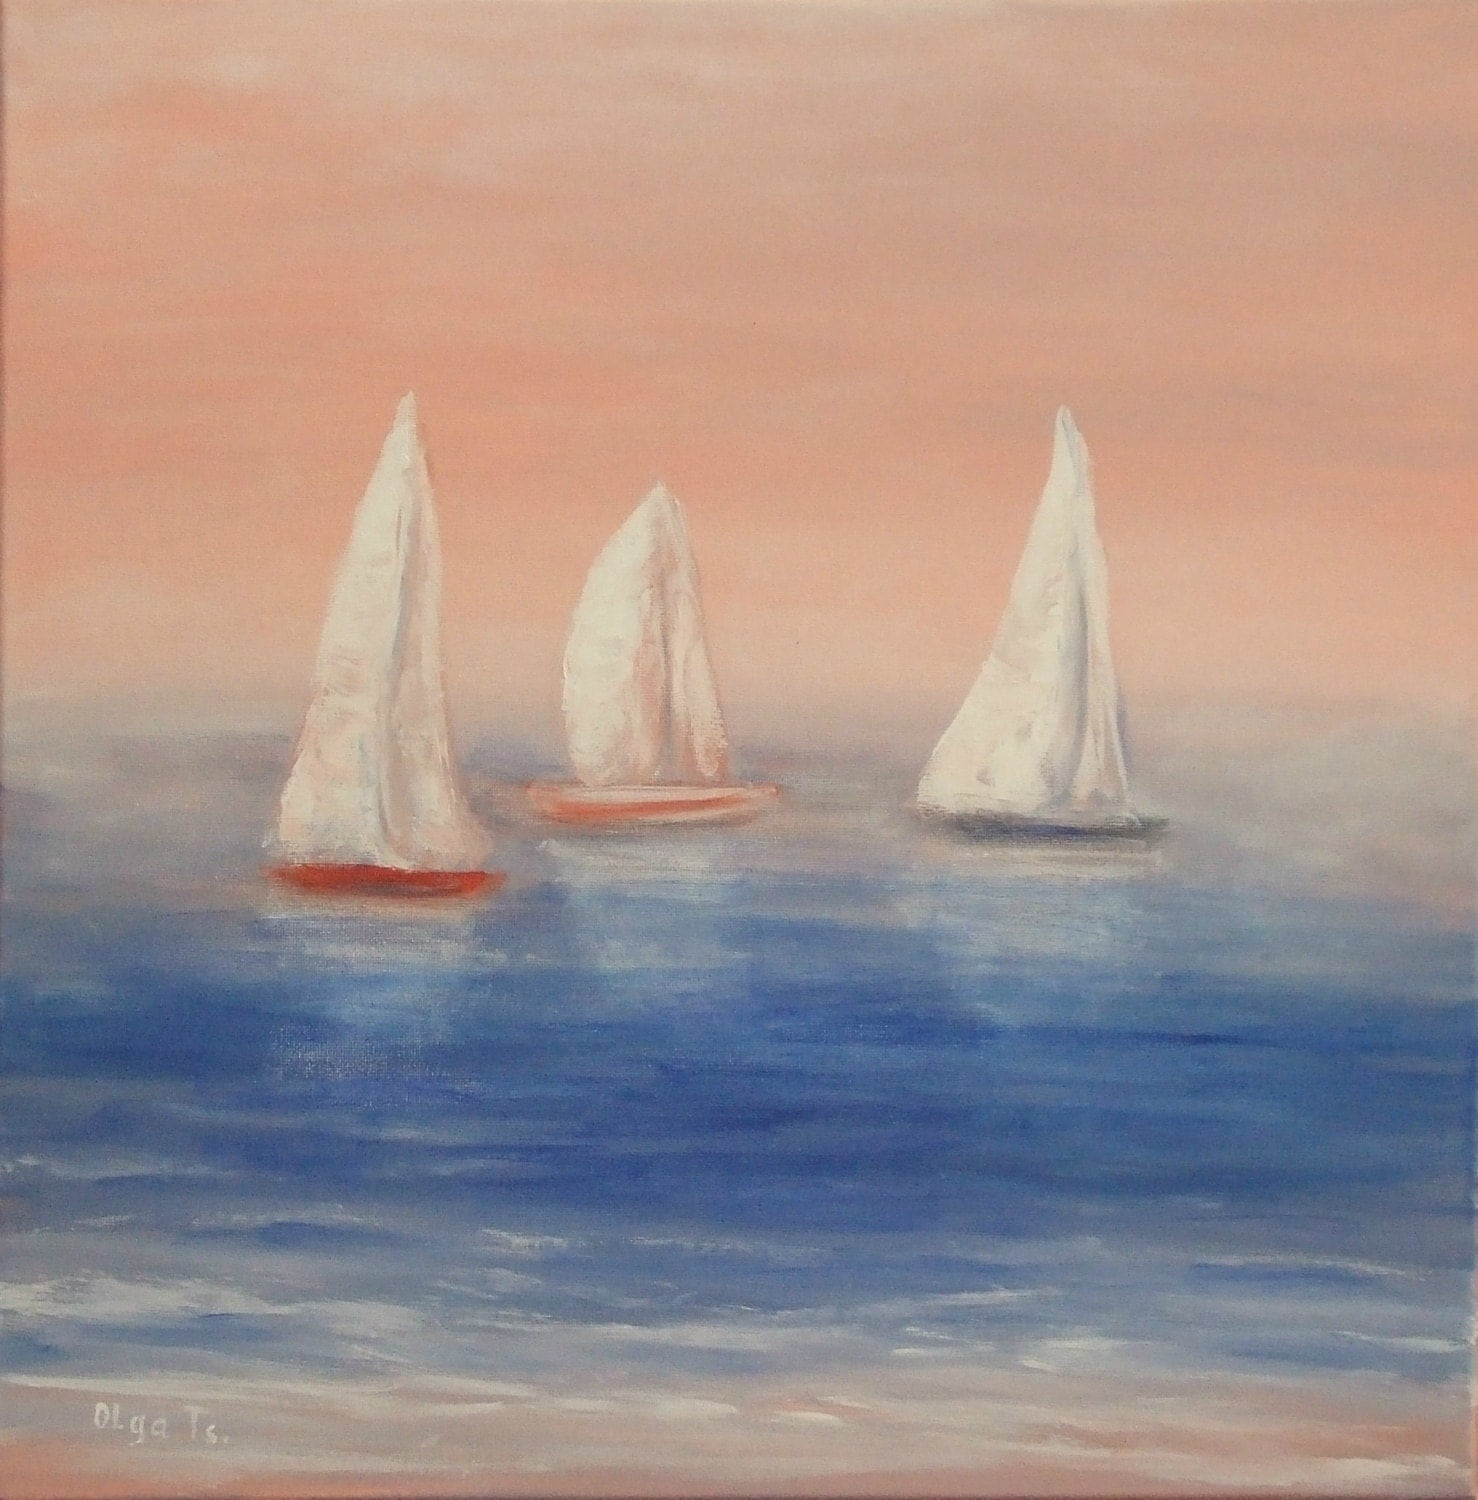 sailboat painting reflection by sven harvey essay Canadian pacific women's open cp partnered with the jim pattison children's hospital for the 2018 cp women's open in regina and helped raise $2 million for a dedicated pediatric cardiology space called the frog pod in the new hospital.